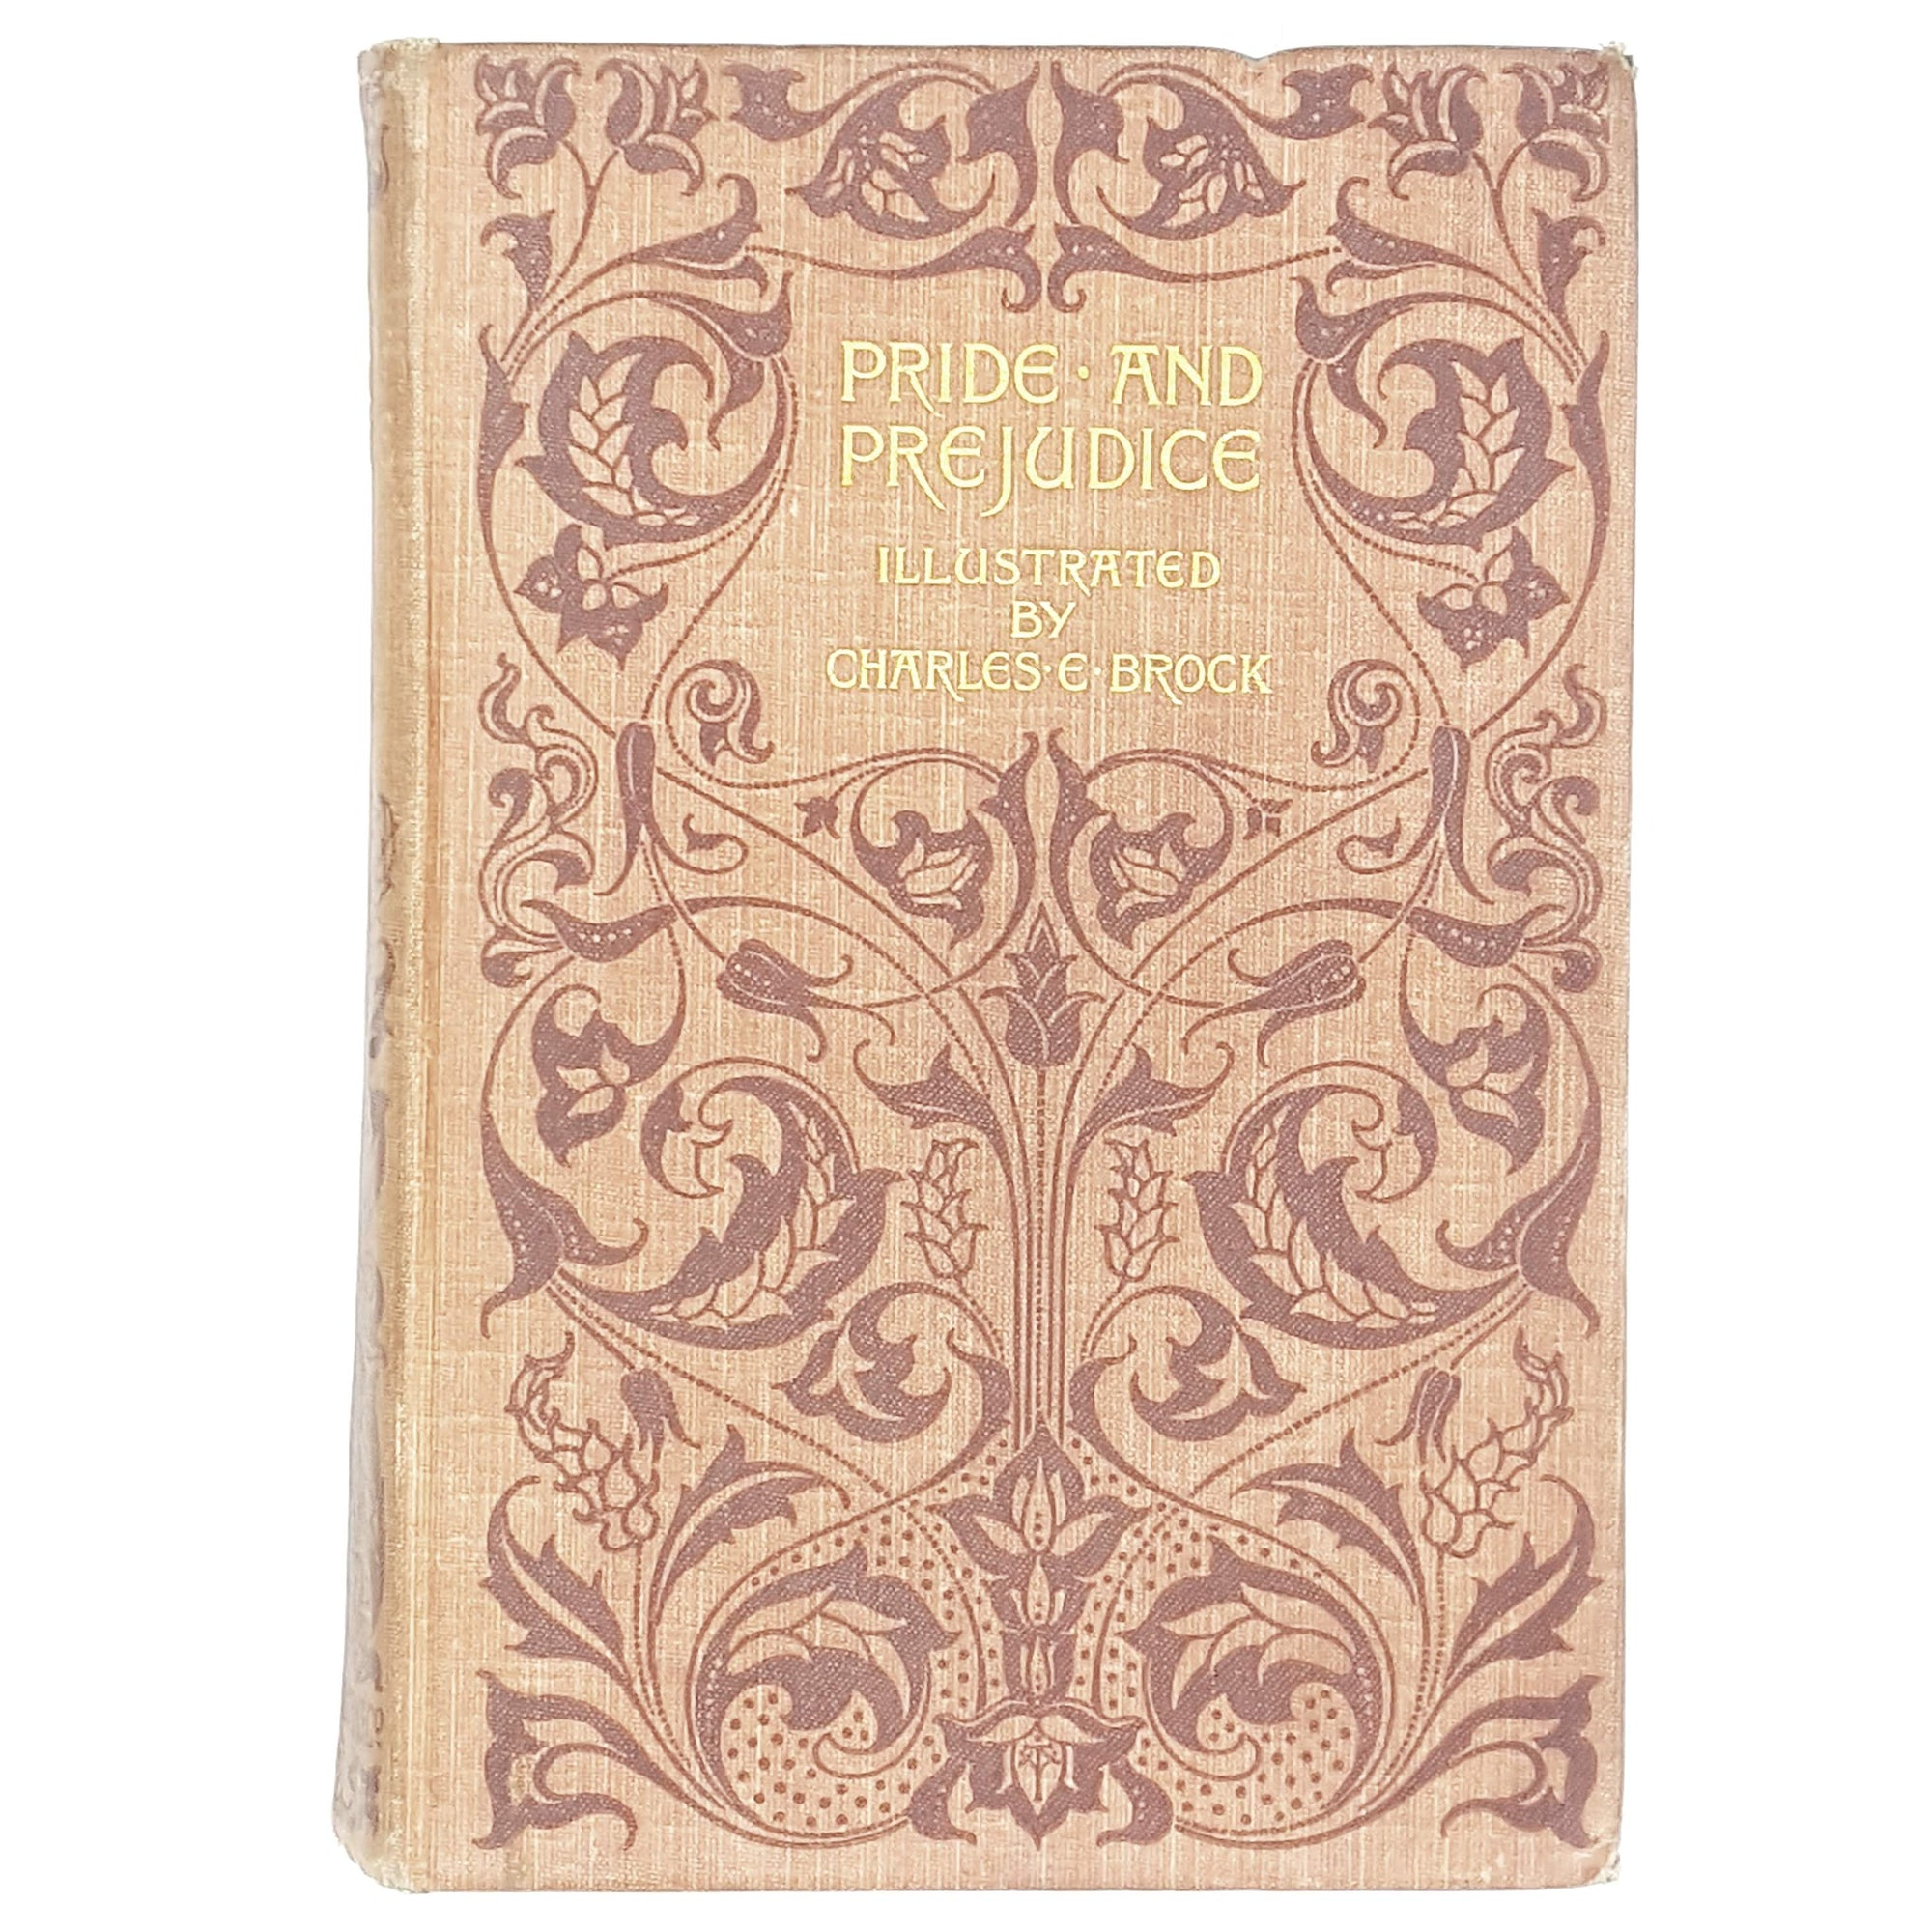 illustrated-jane-austen-pride-prejudice-old-book-1901-orange-brown-earth-tones